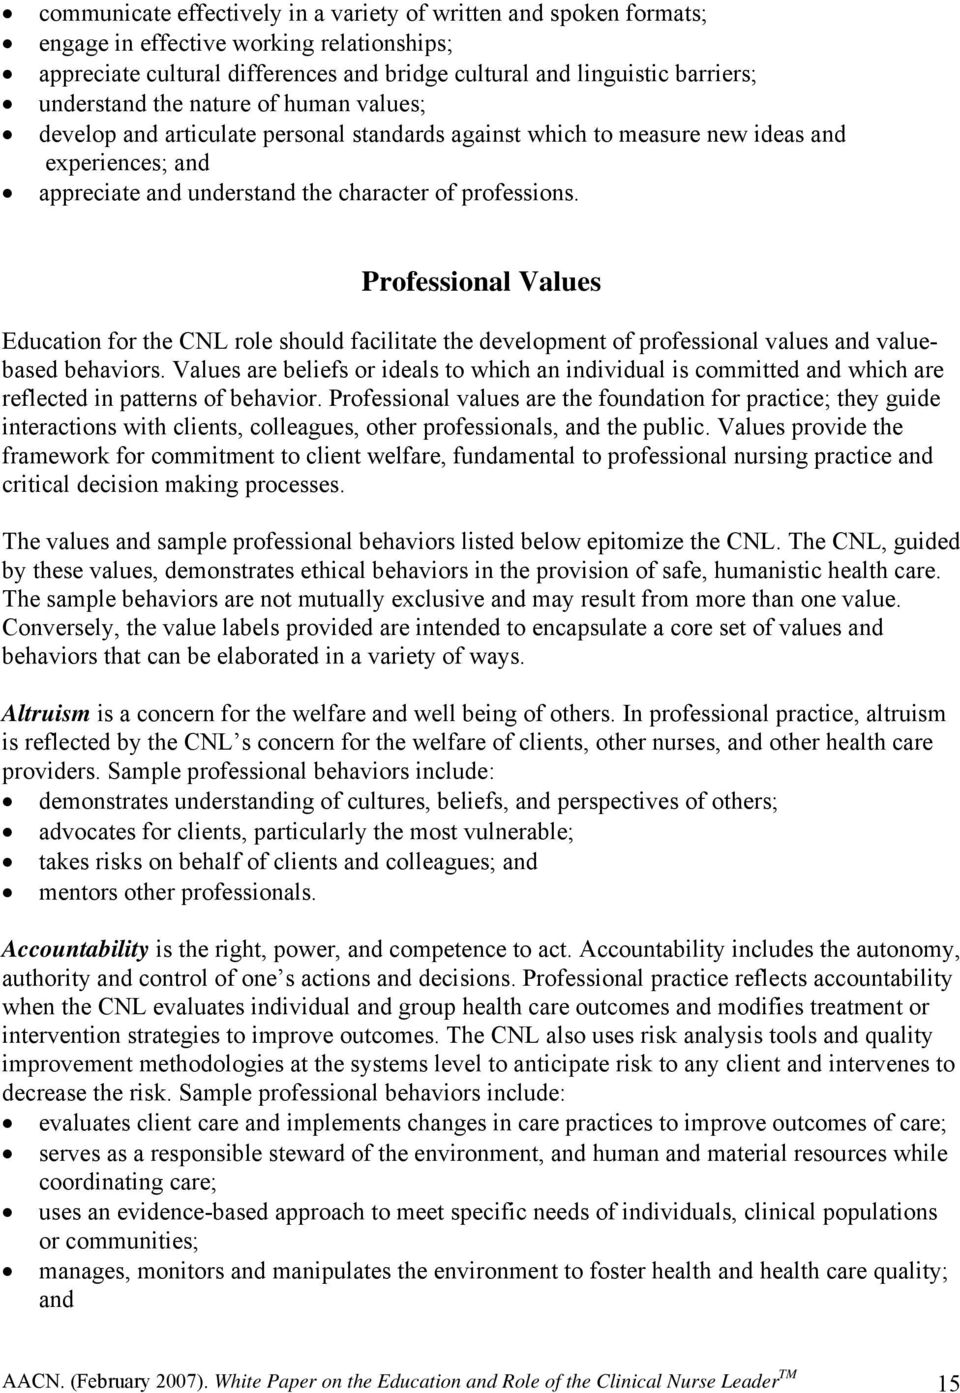 Professional Values Education for the CNL role should facilitate the development of professional values and valuebased behaviors.